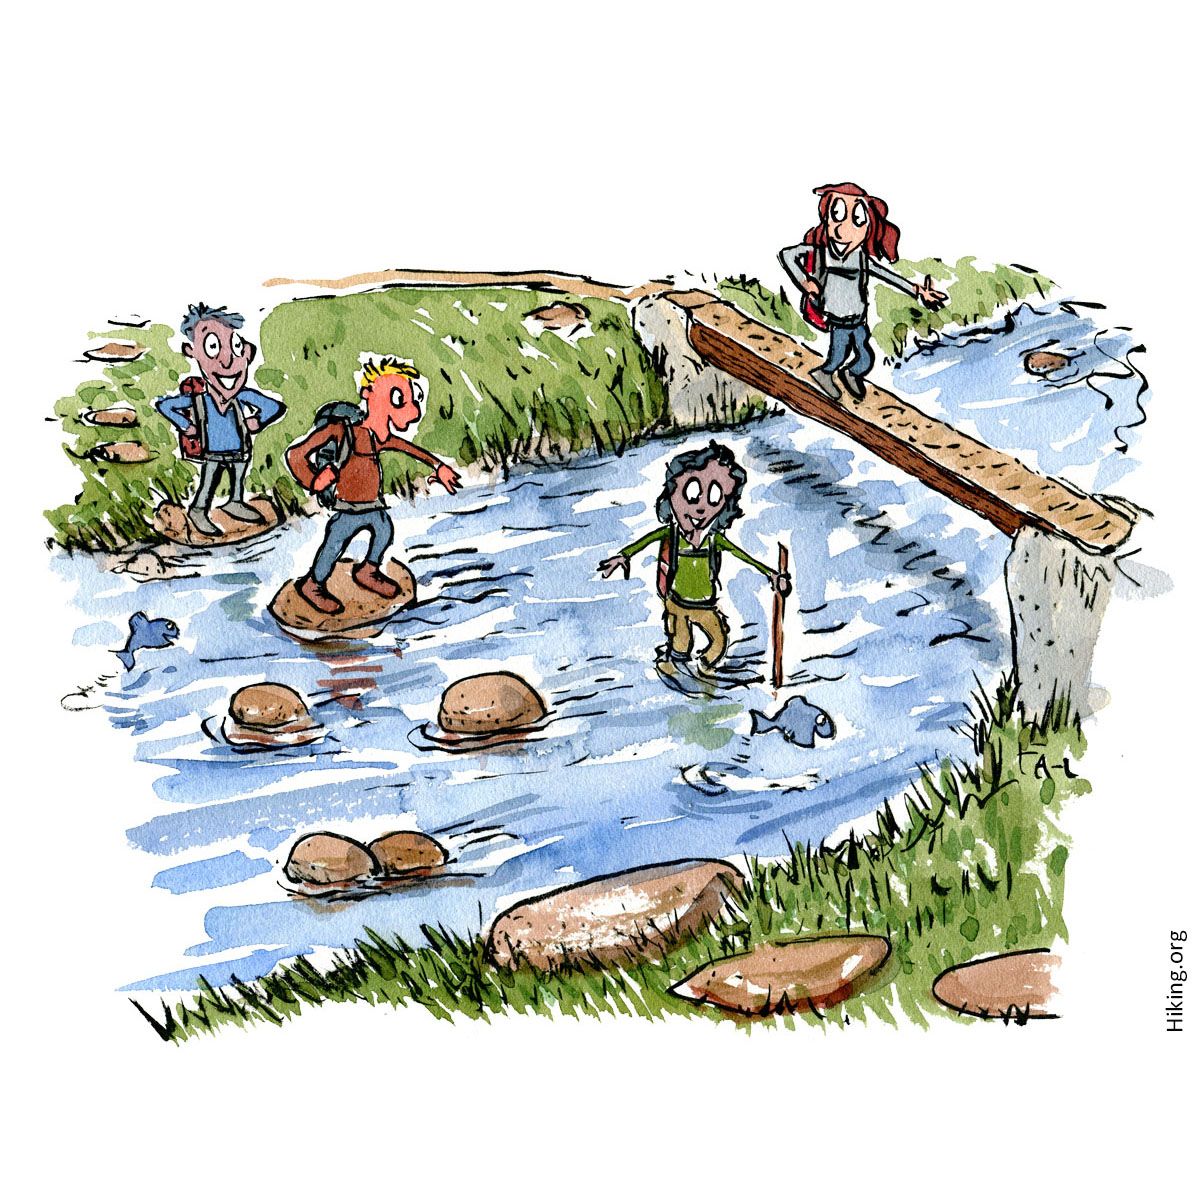 Group of people crossing a river with different strategies and places. Illustration by Frits Ahlefeldt